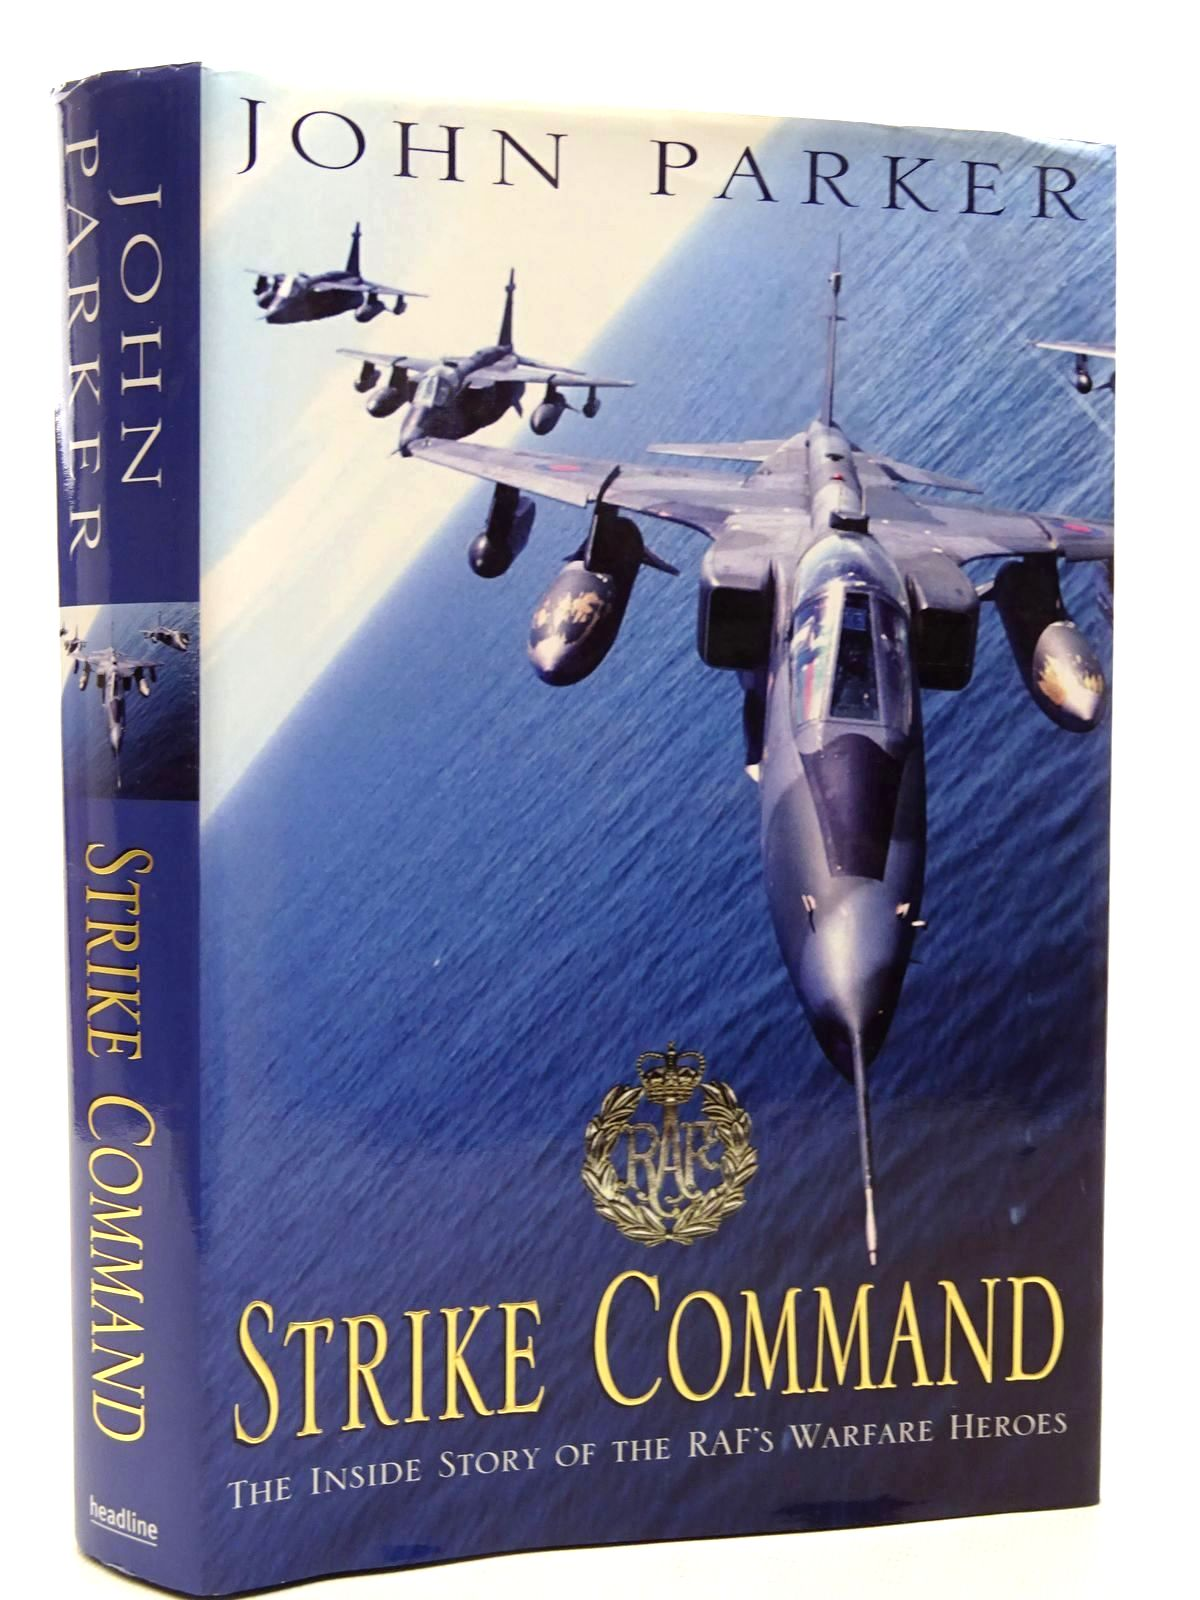 Strike Command: The Inside Story of the RAFs Warfare Heroes